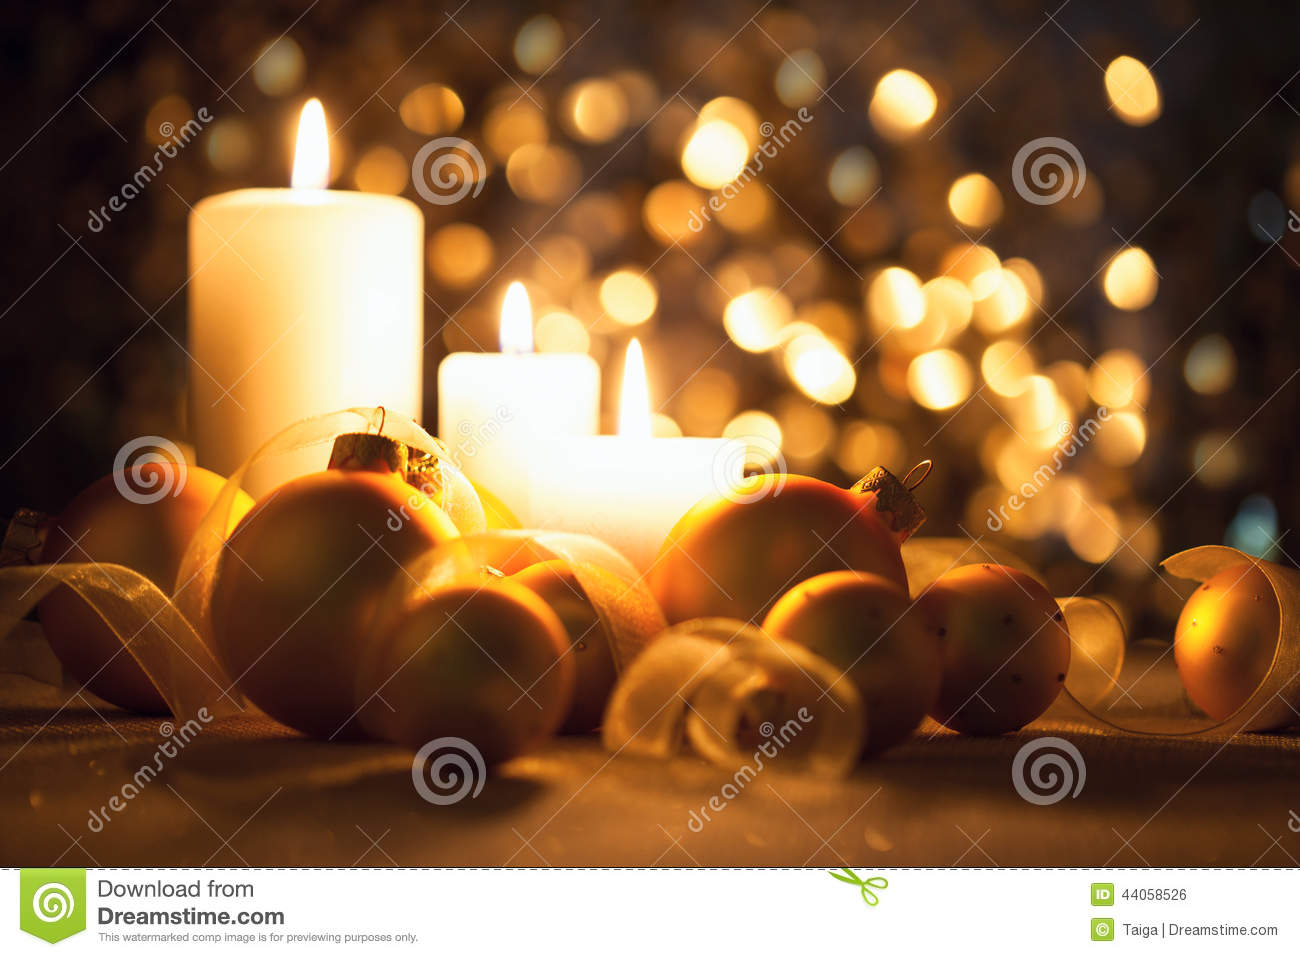 Fall Candles Wallpaper Warm Night Christmas Decorations On Magic Bokeh Background